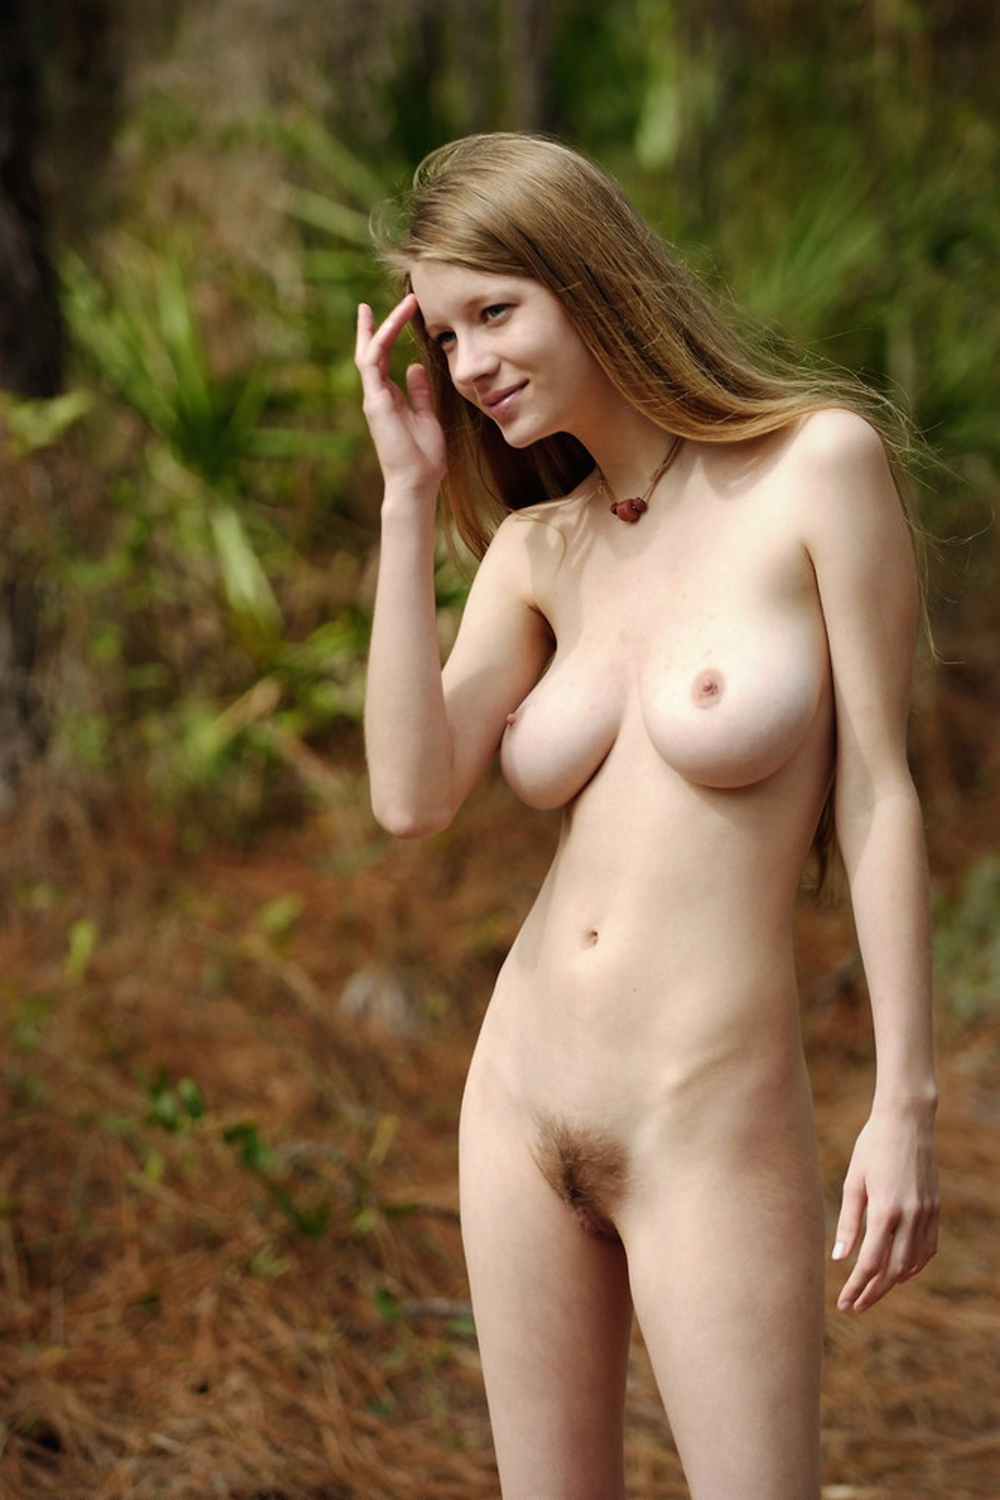 Watch Natural Nude Girl Hairy Cum Pussy